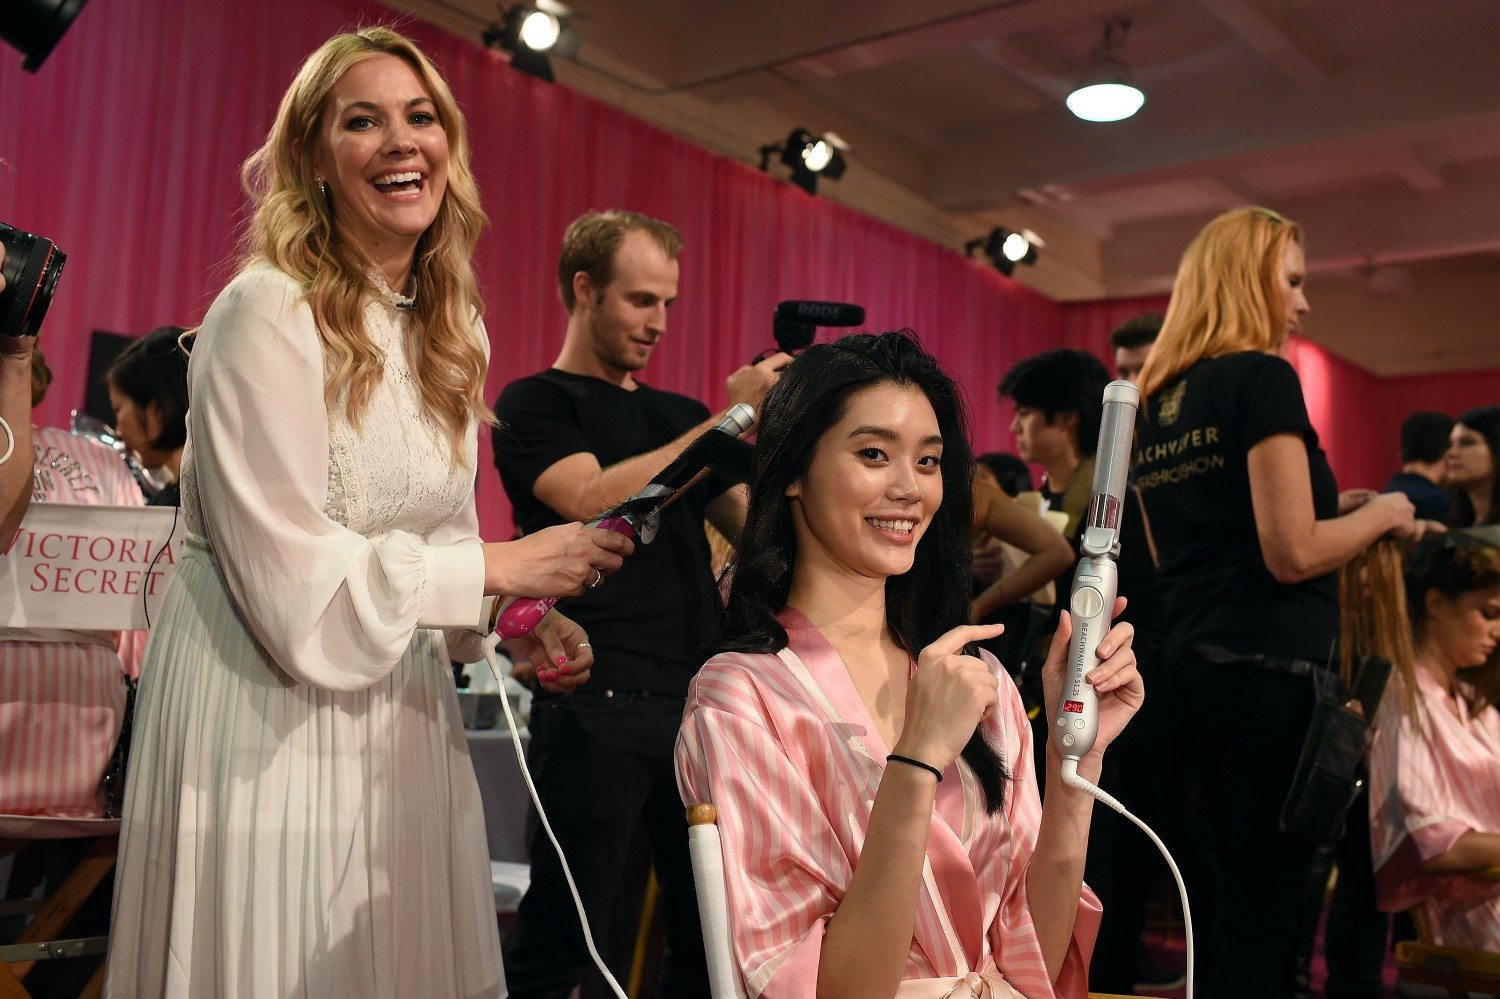 Sarah Potempa Talks Beachwaver And Its Success At Victoria's Secret Fashion Show